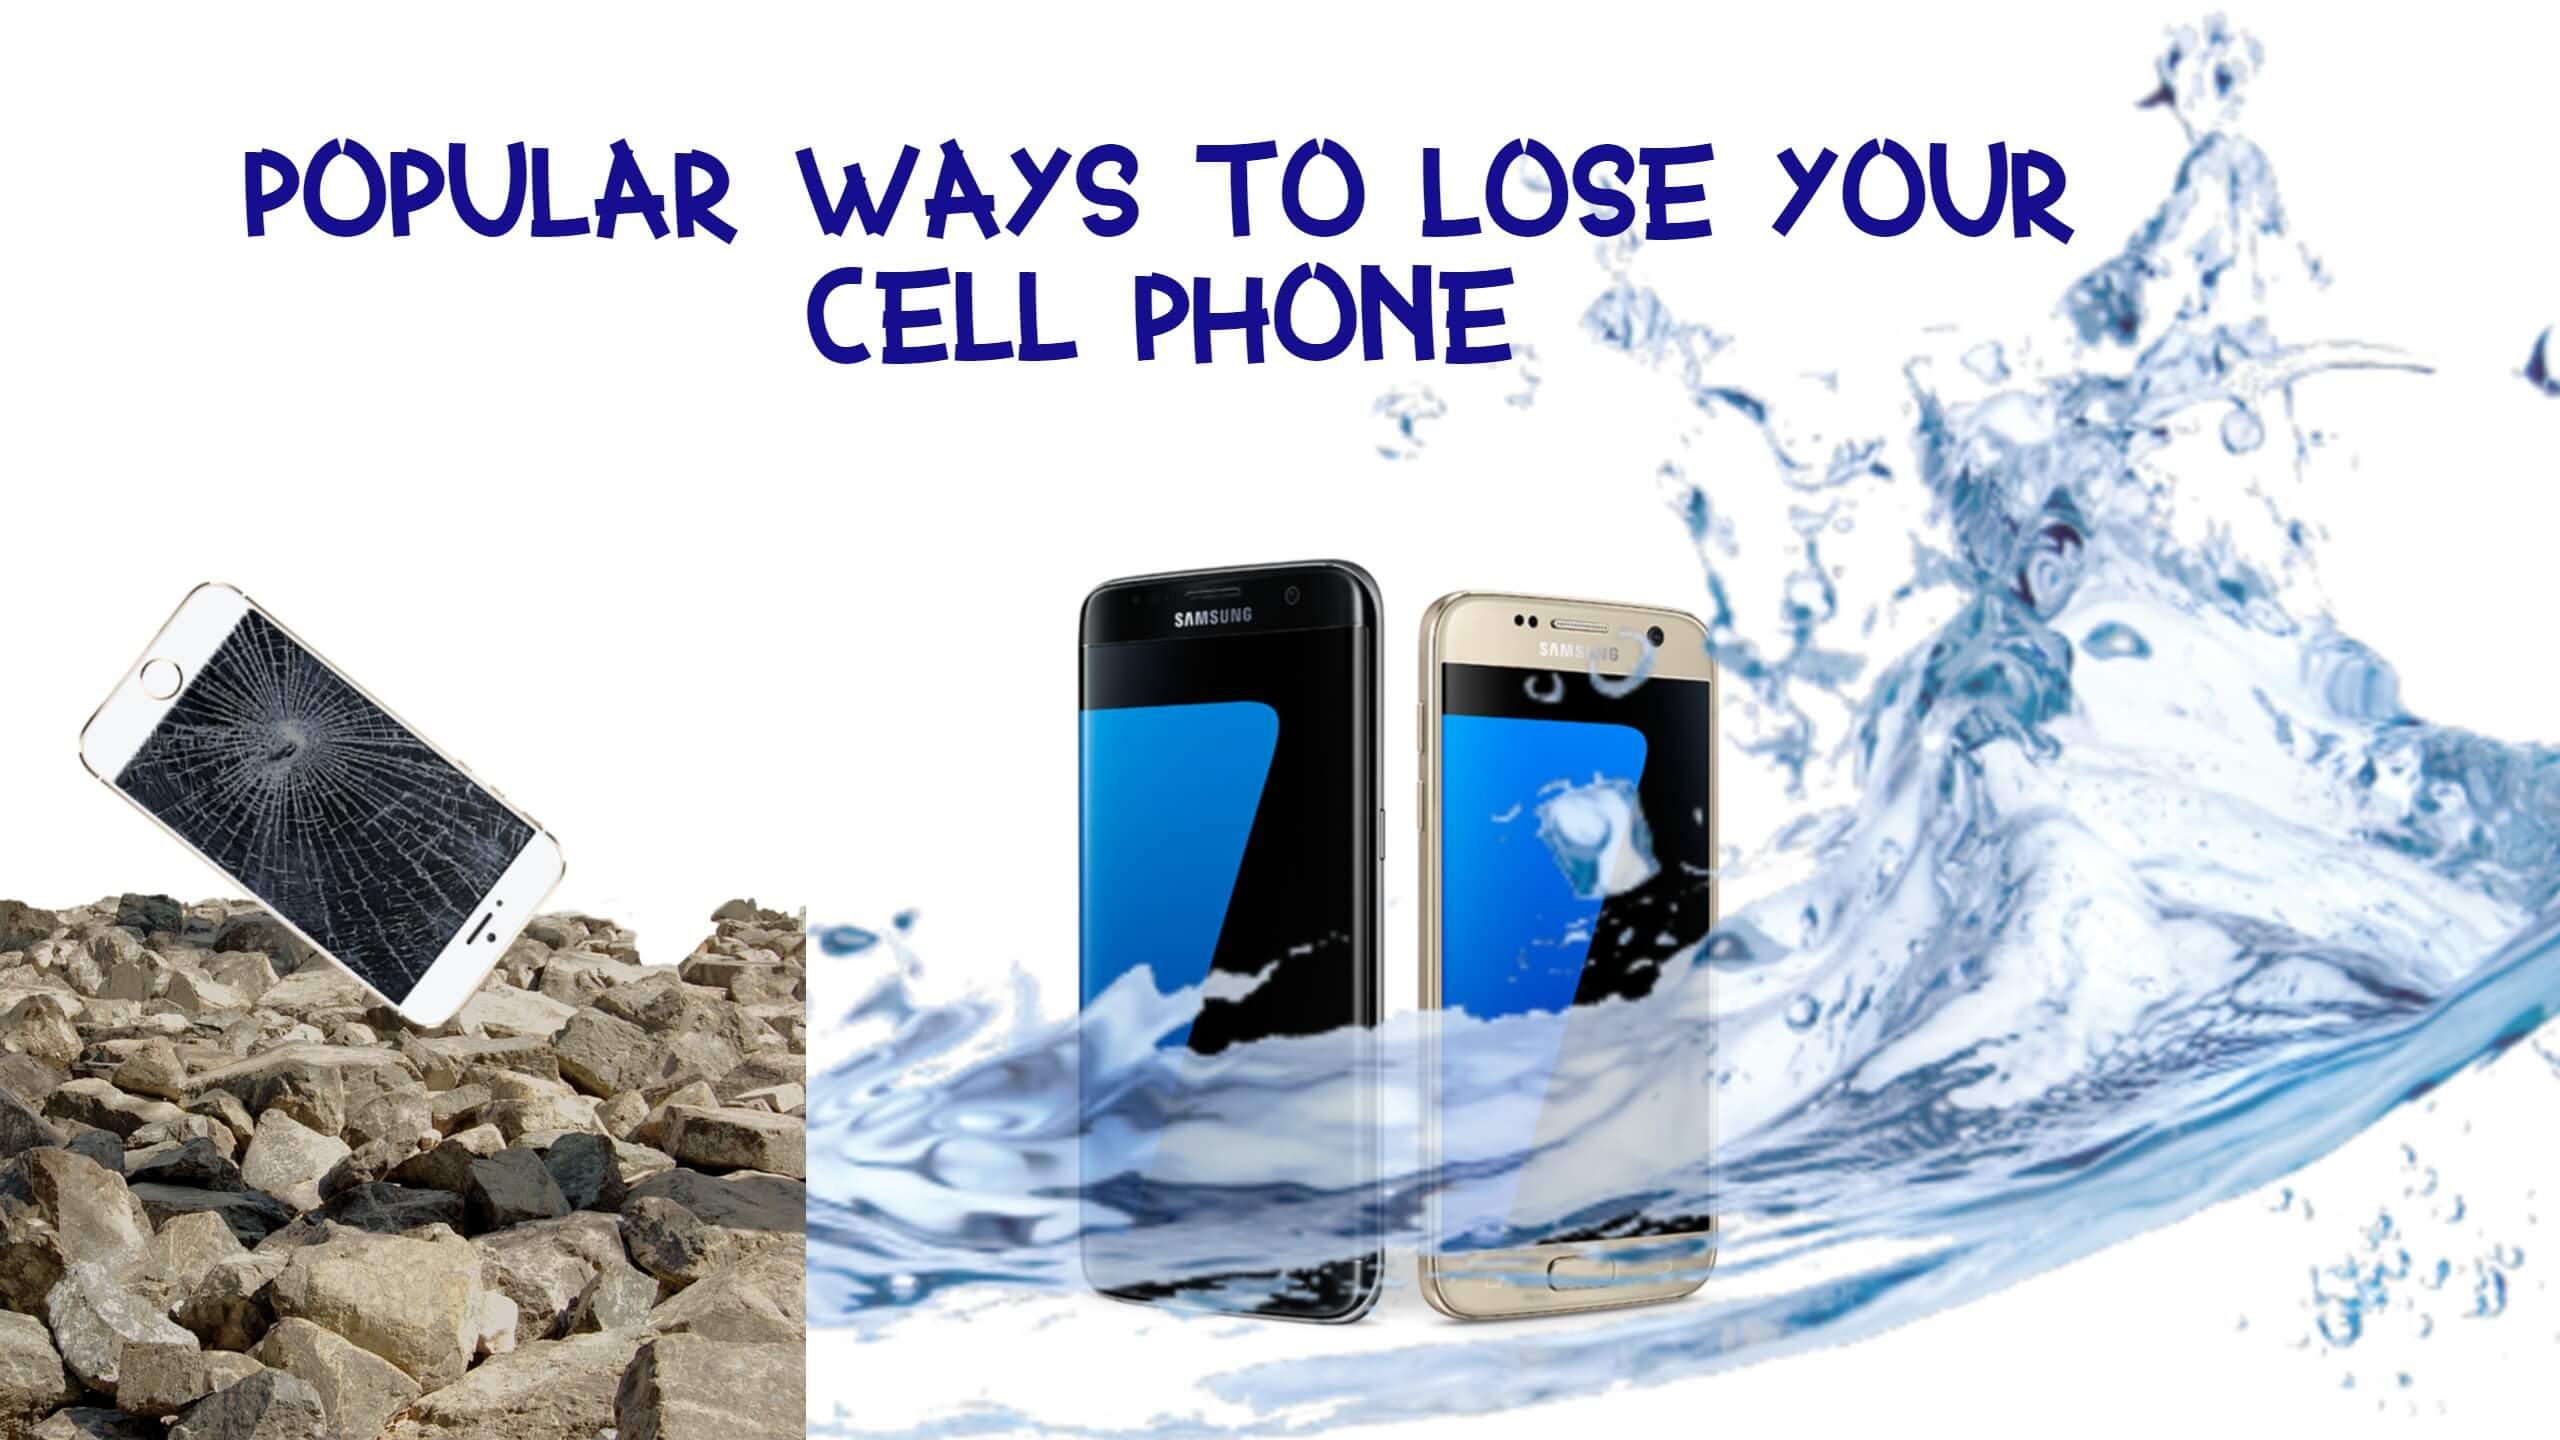 Popular ways to lose your cell phone